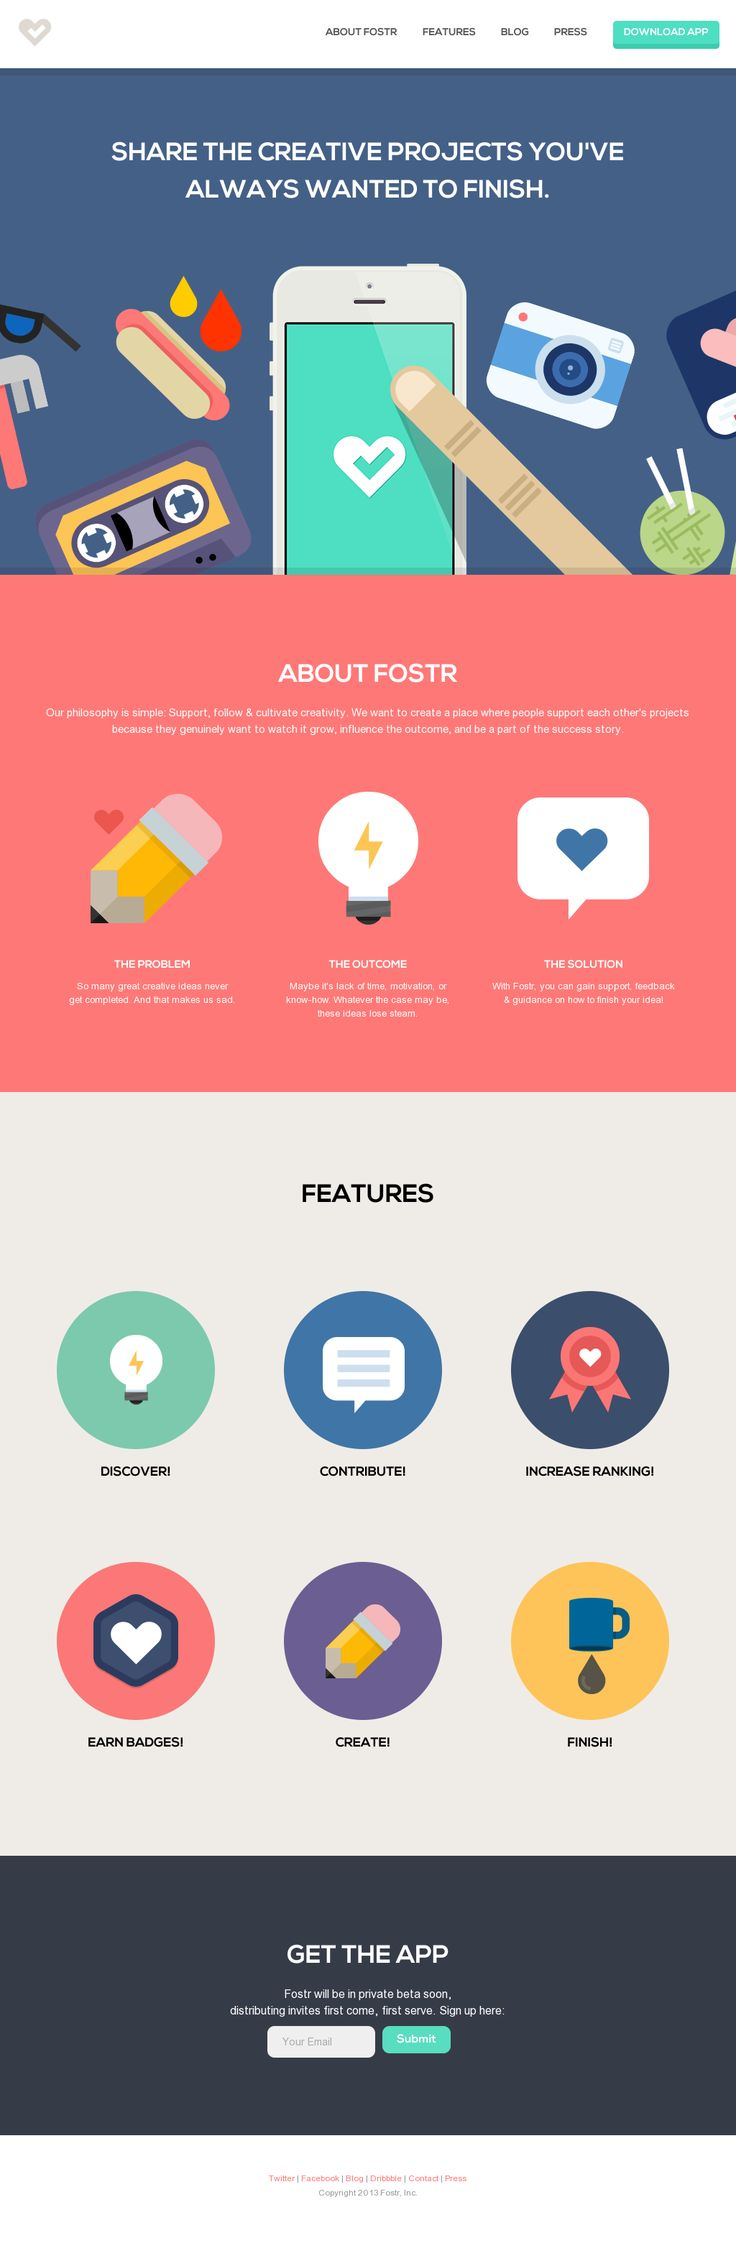 Nice app website - flat design - illustration  I'm kind if obsessed with flat design lately.